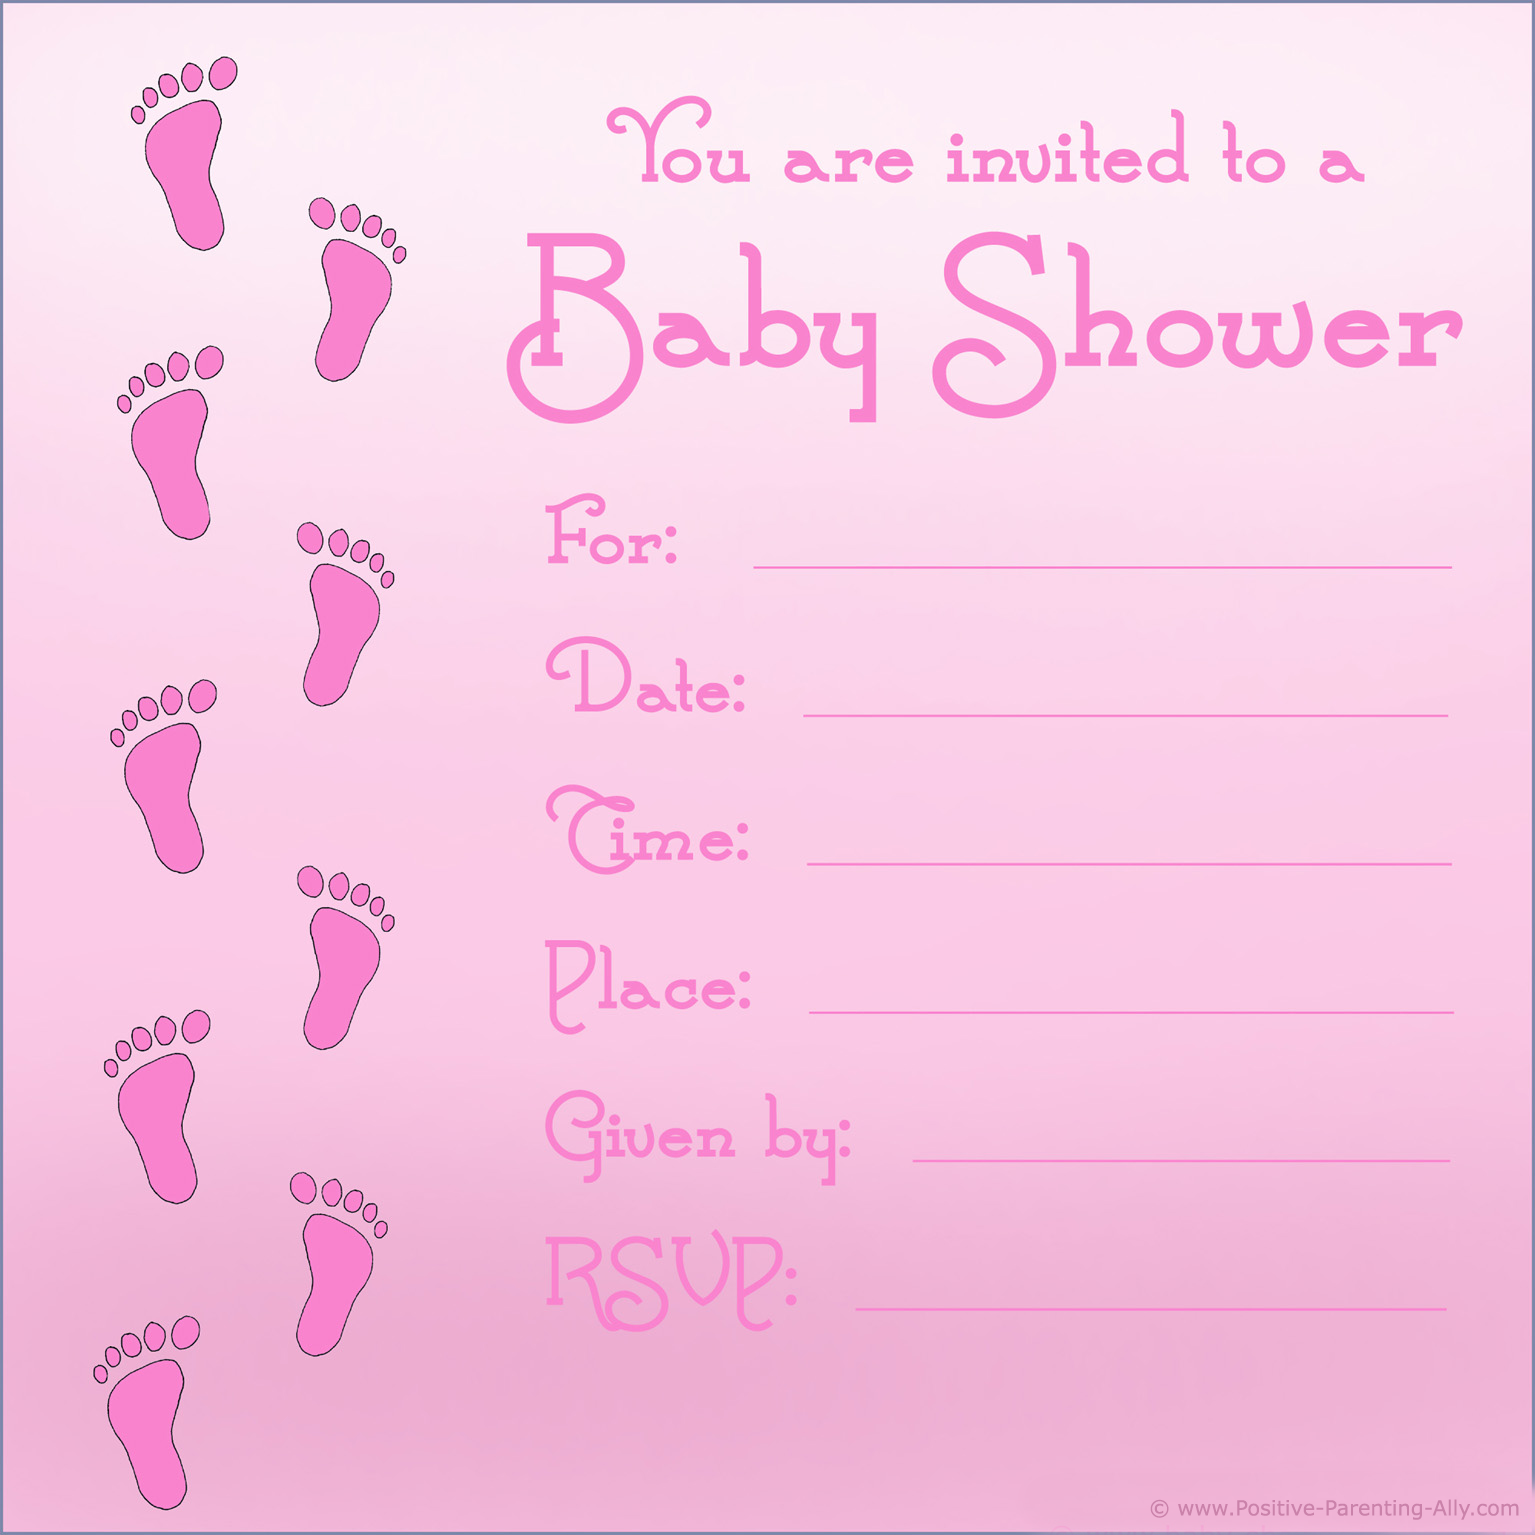 Baby girl shower invitations template with pink footprints.